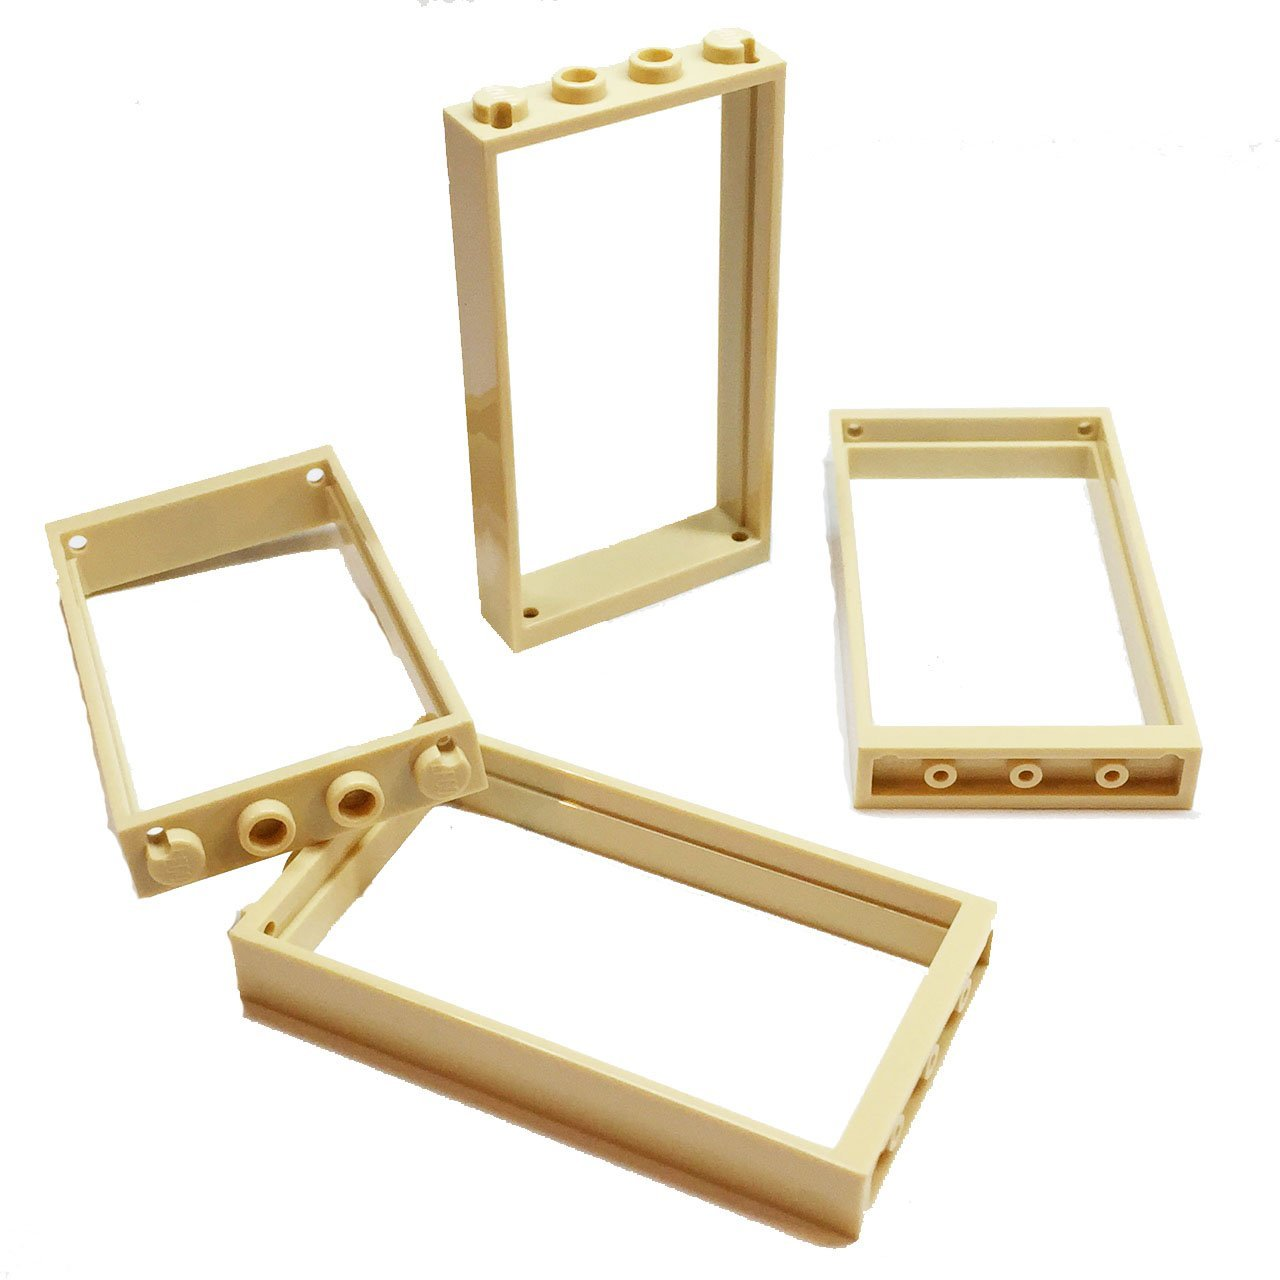 Lego Parts: Door Frame 1 x 4 x 6 - Type 2 (Service Pack of 4 - Tan)